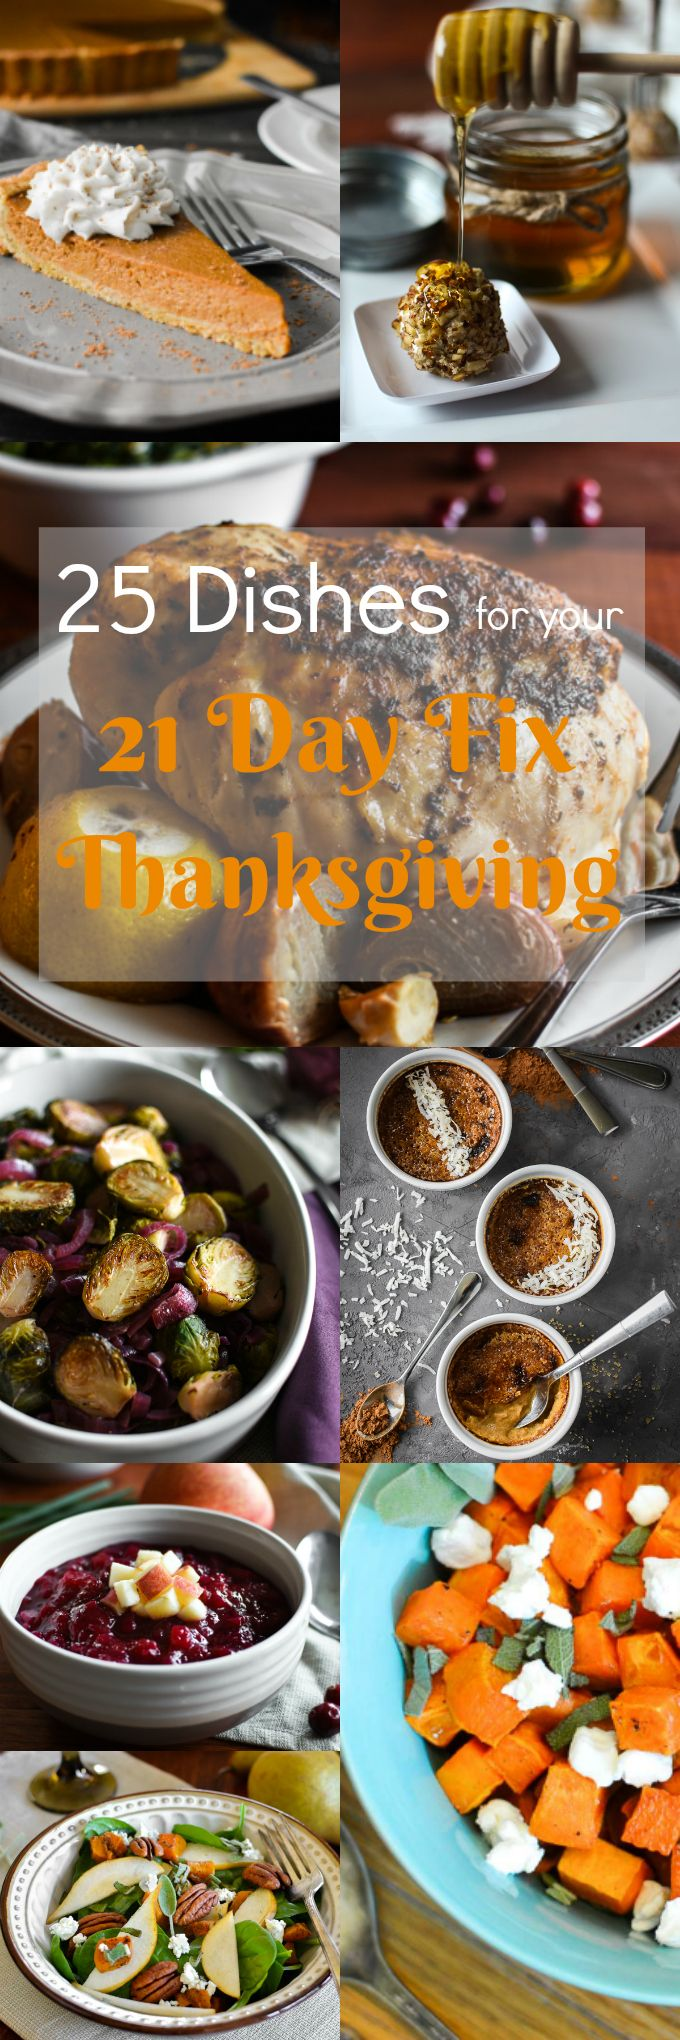 25 Thanksgiving recipes that are all 21 Day Fix-approved, with container counts!